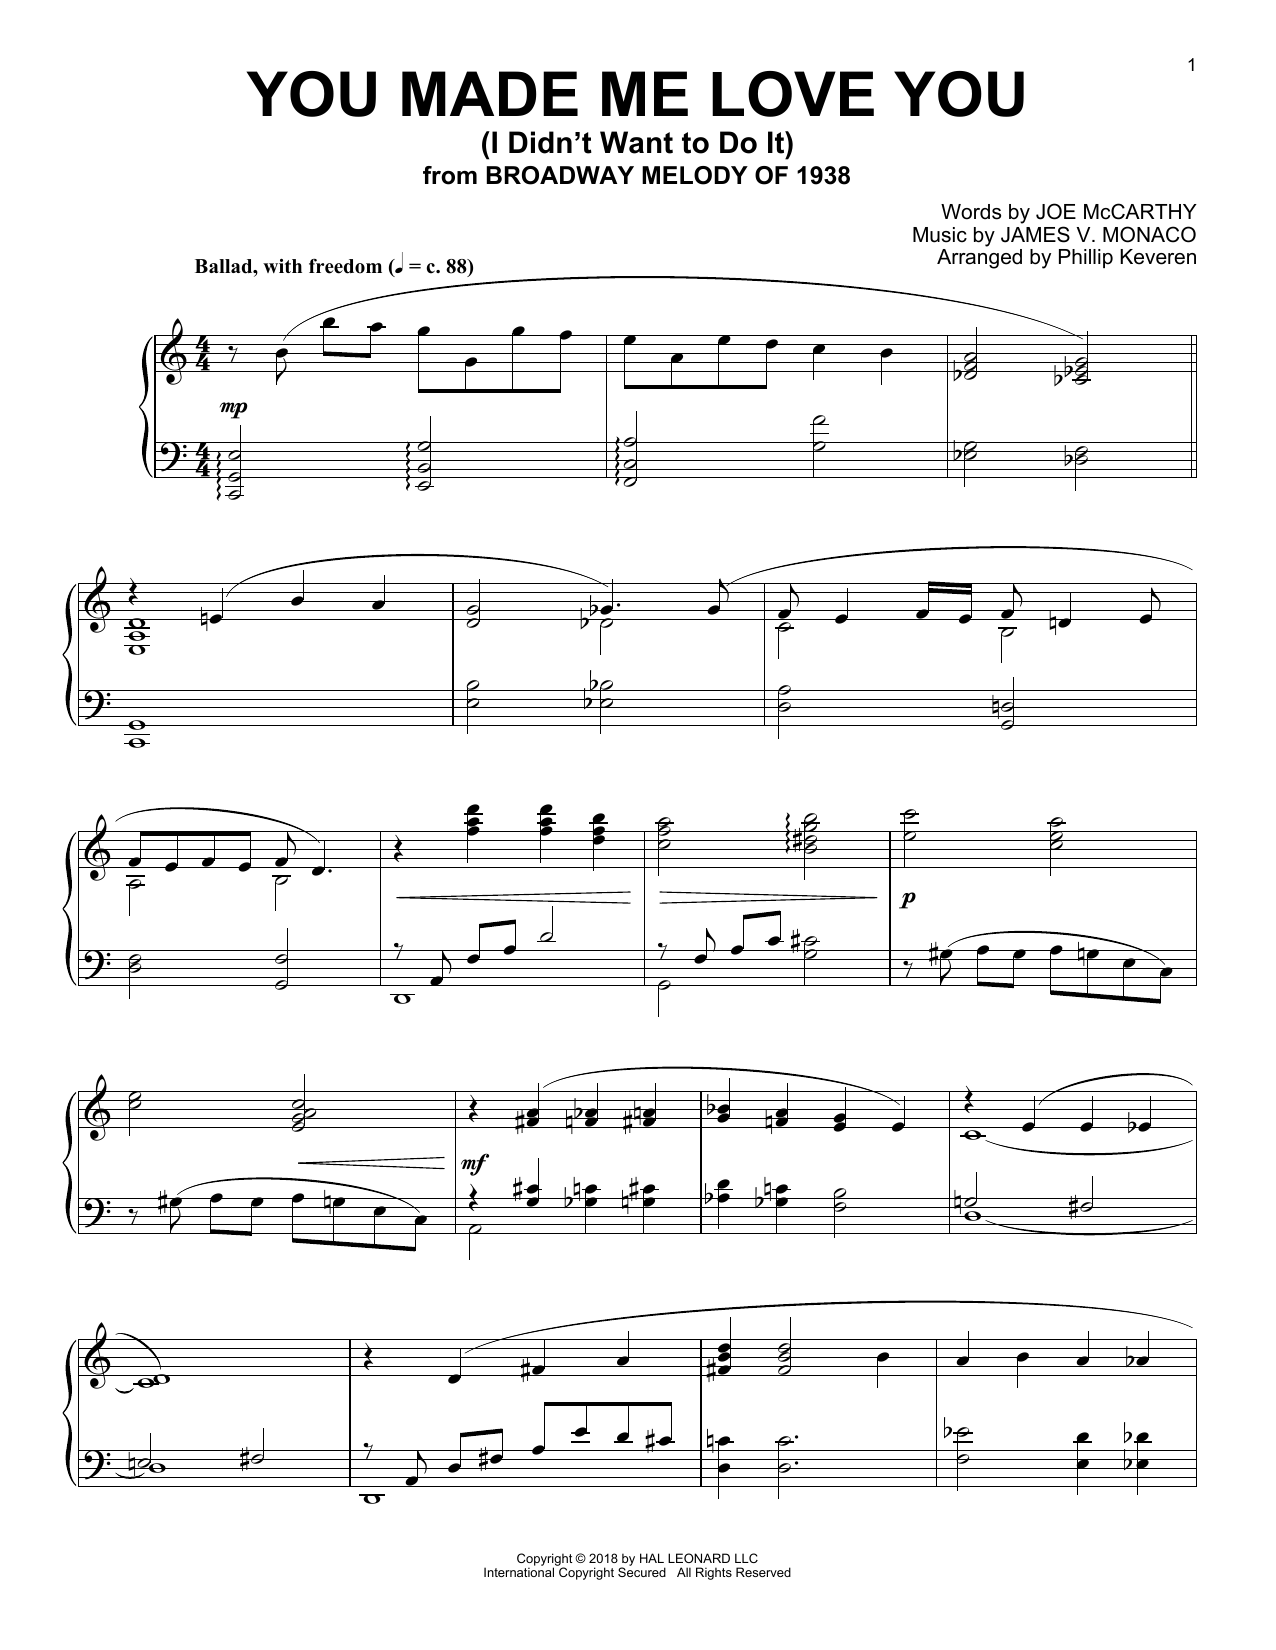 Download Joe McCarthy 'You Made Me Love You (I Didn't Want To Do It) (arr. Phillip Keveren)' Digital Sheet Music Notes & Chords and start playing in minutes